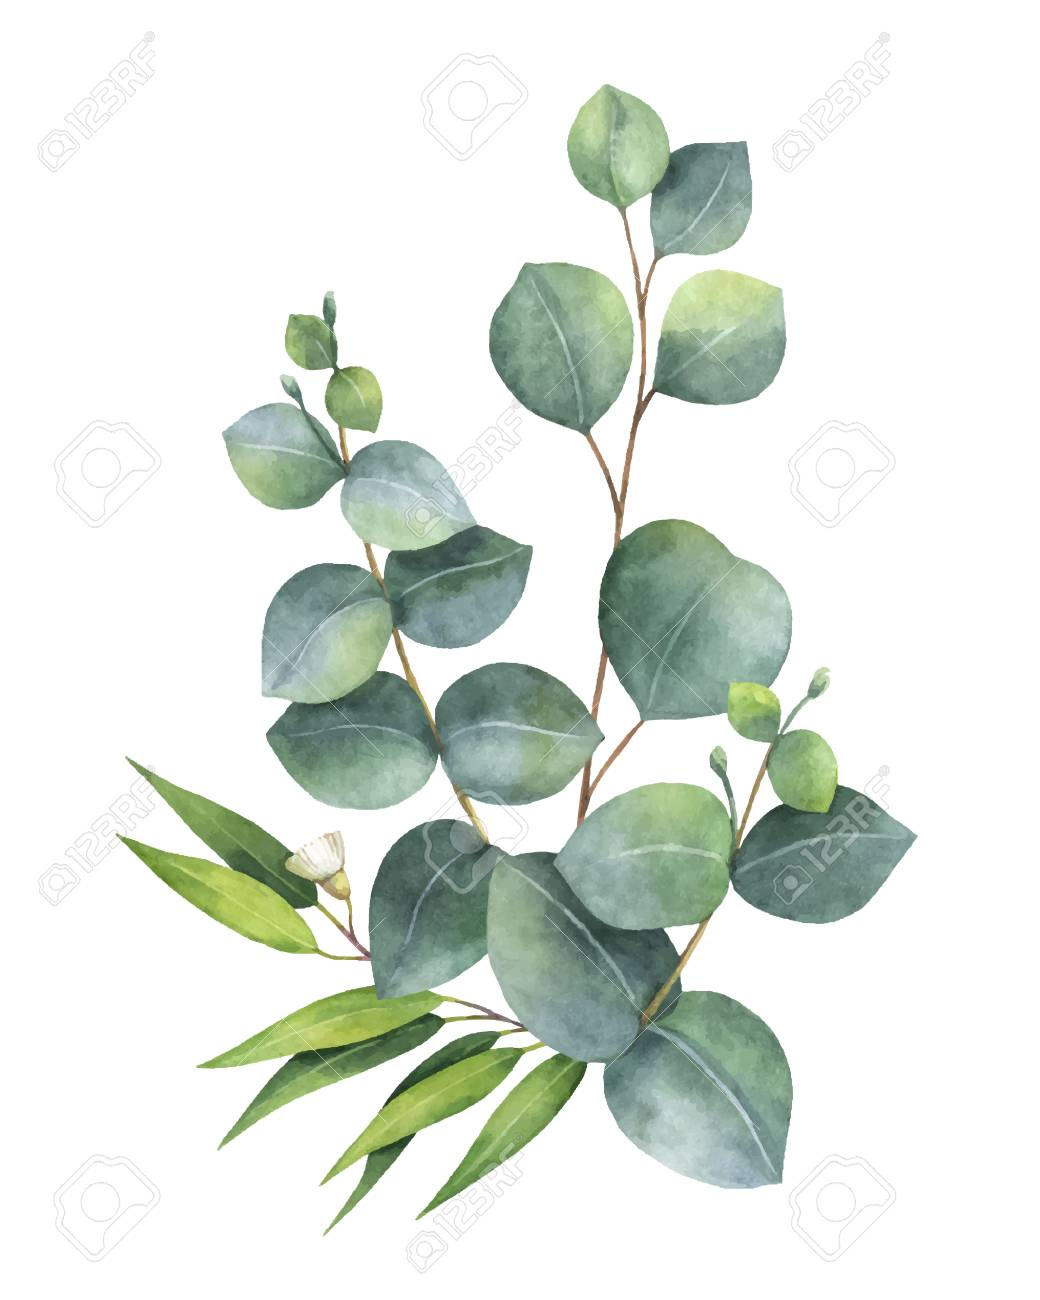 Watercolor vector bouquet with green eucalyptus leaves and branches. Spring or summer flowers for invitation, wedding or greeting cards. - 91104339